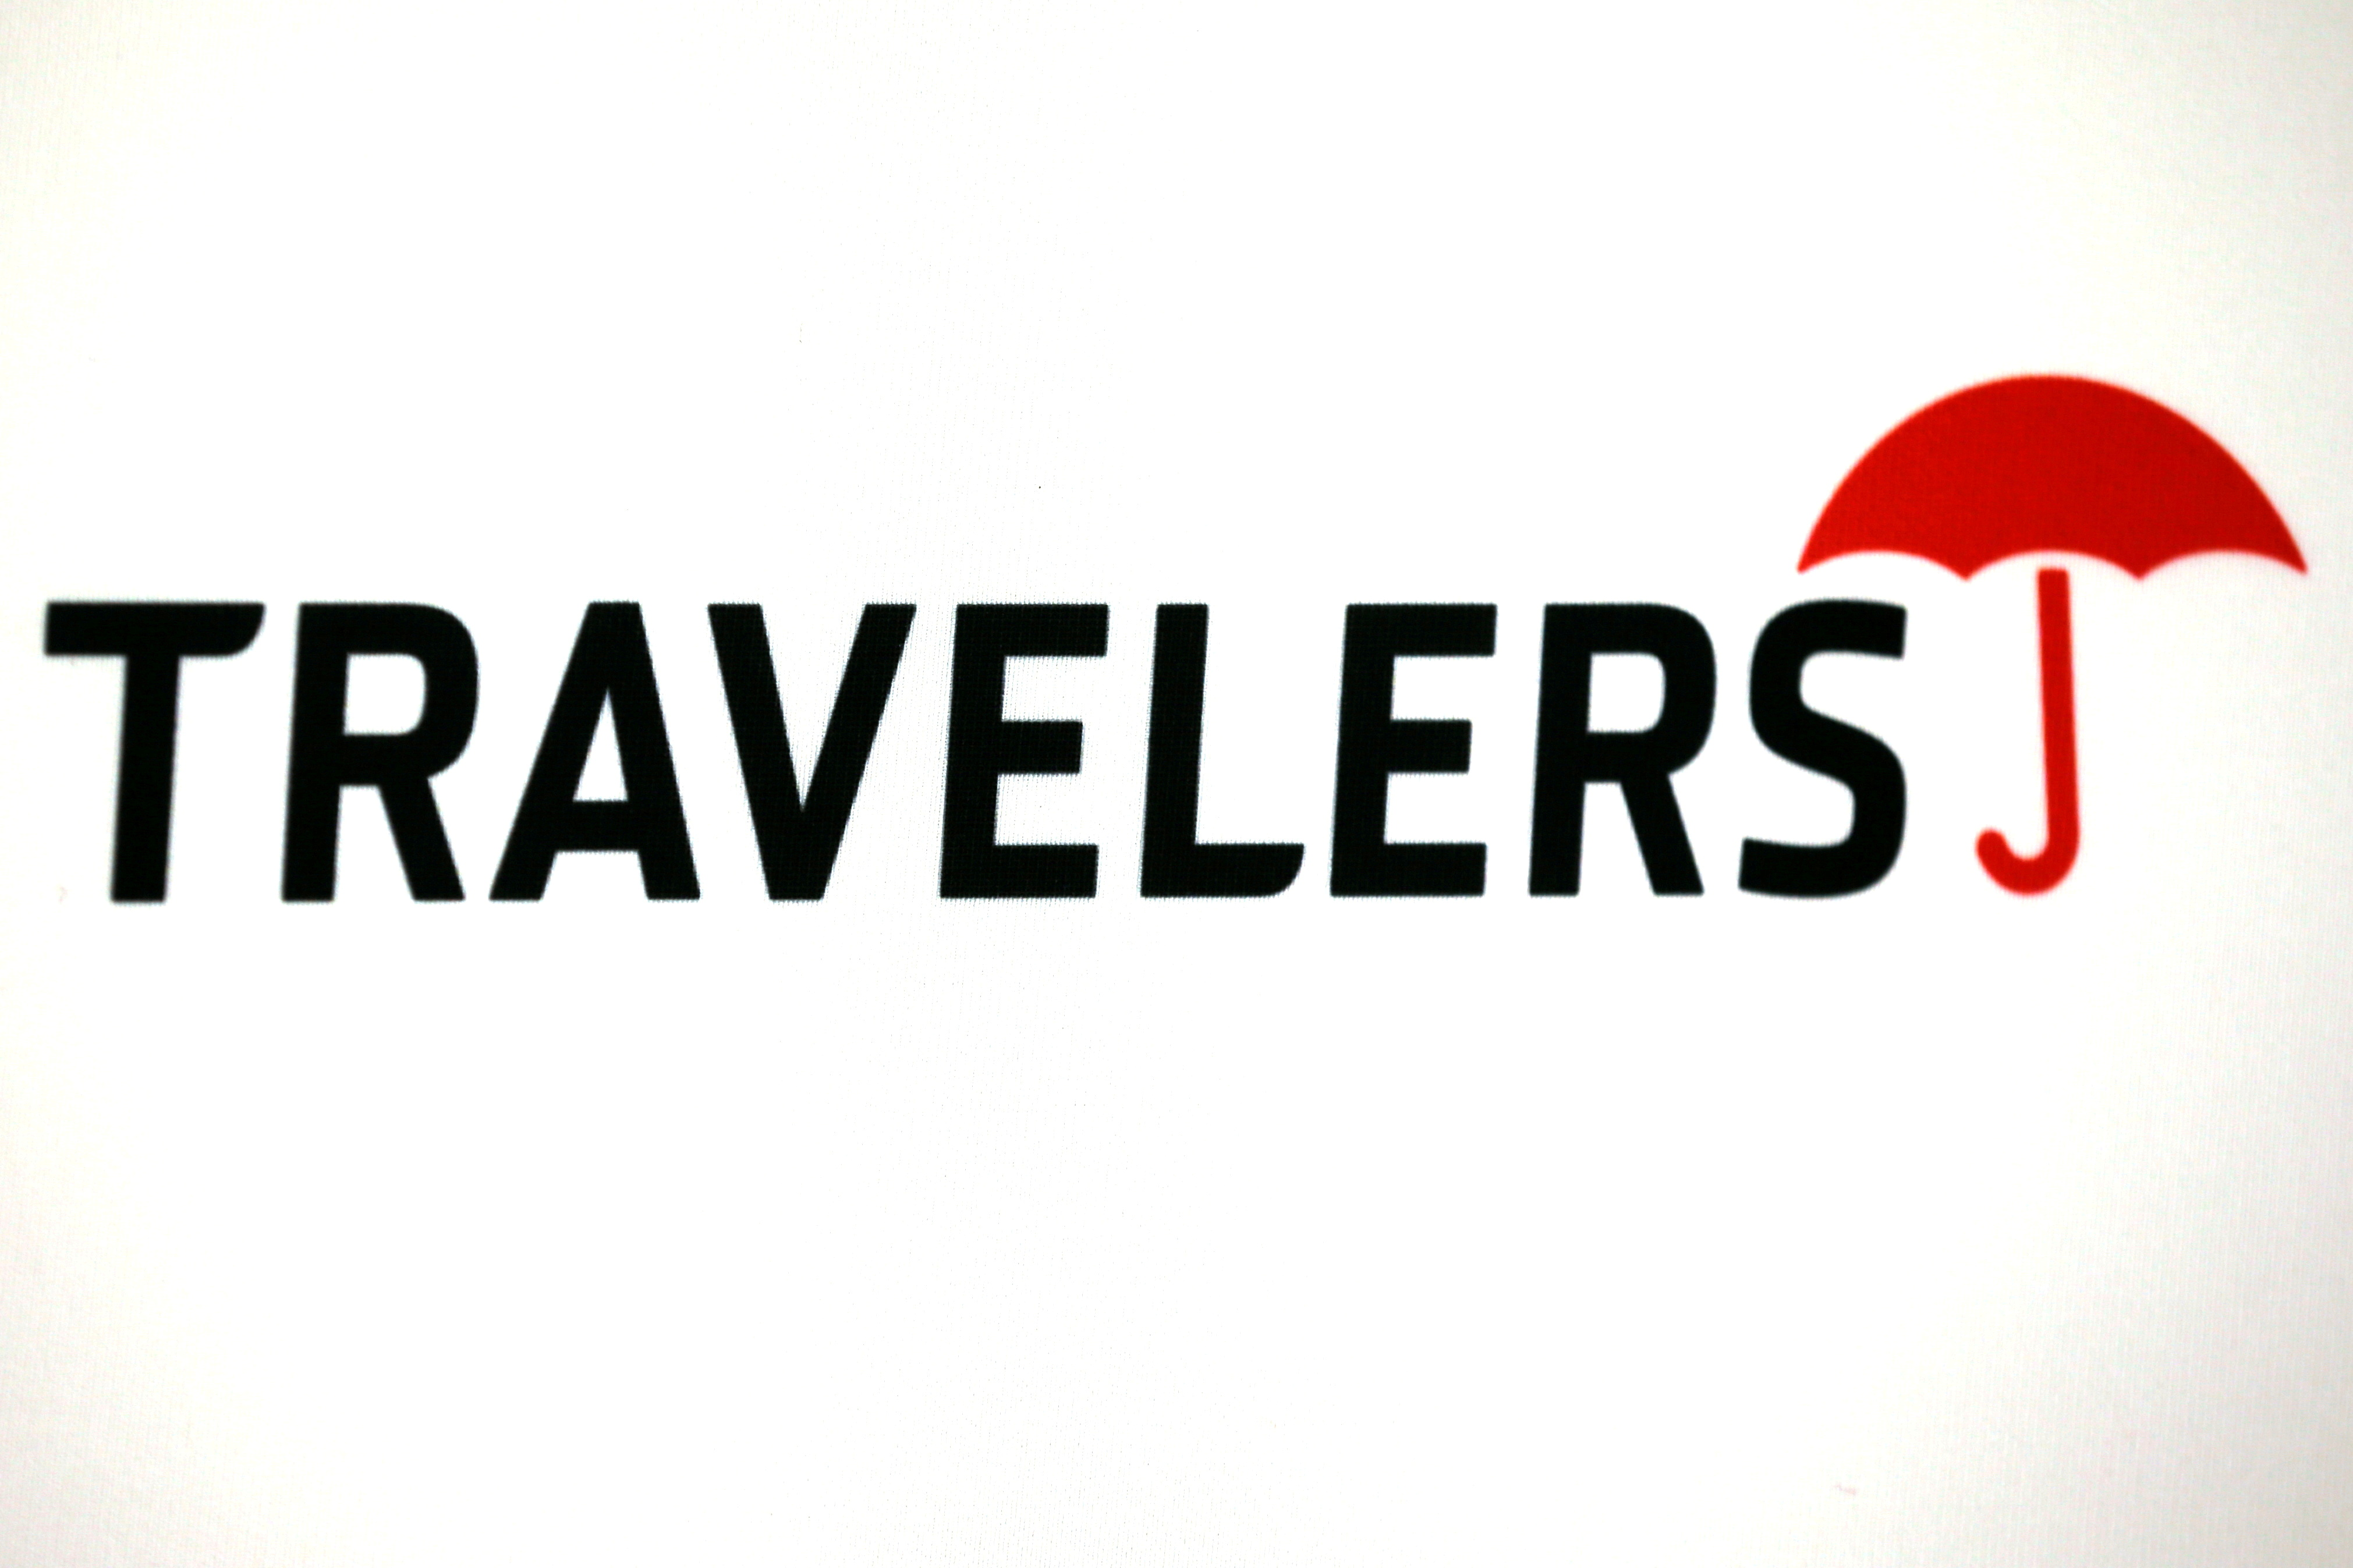 The logo of Travelers Companies is seen in Los Angeles, California, United States. REUTERS/Lucy Nicholson